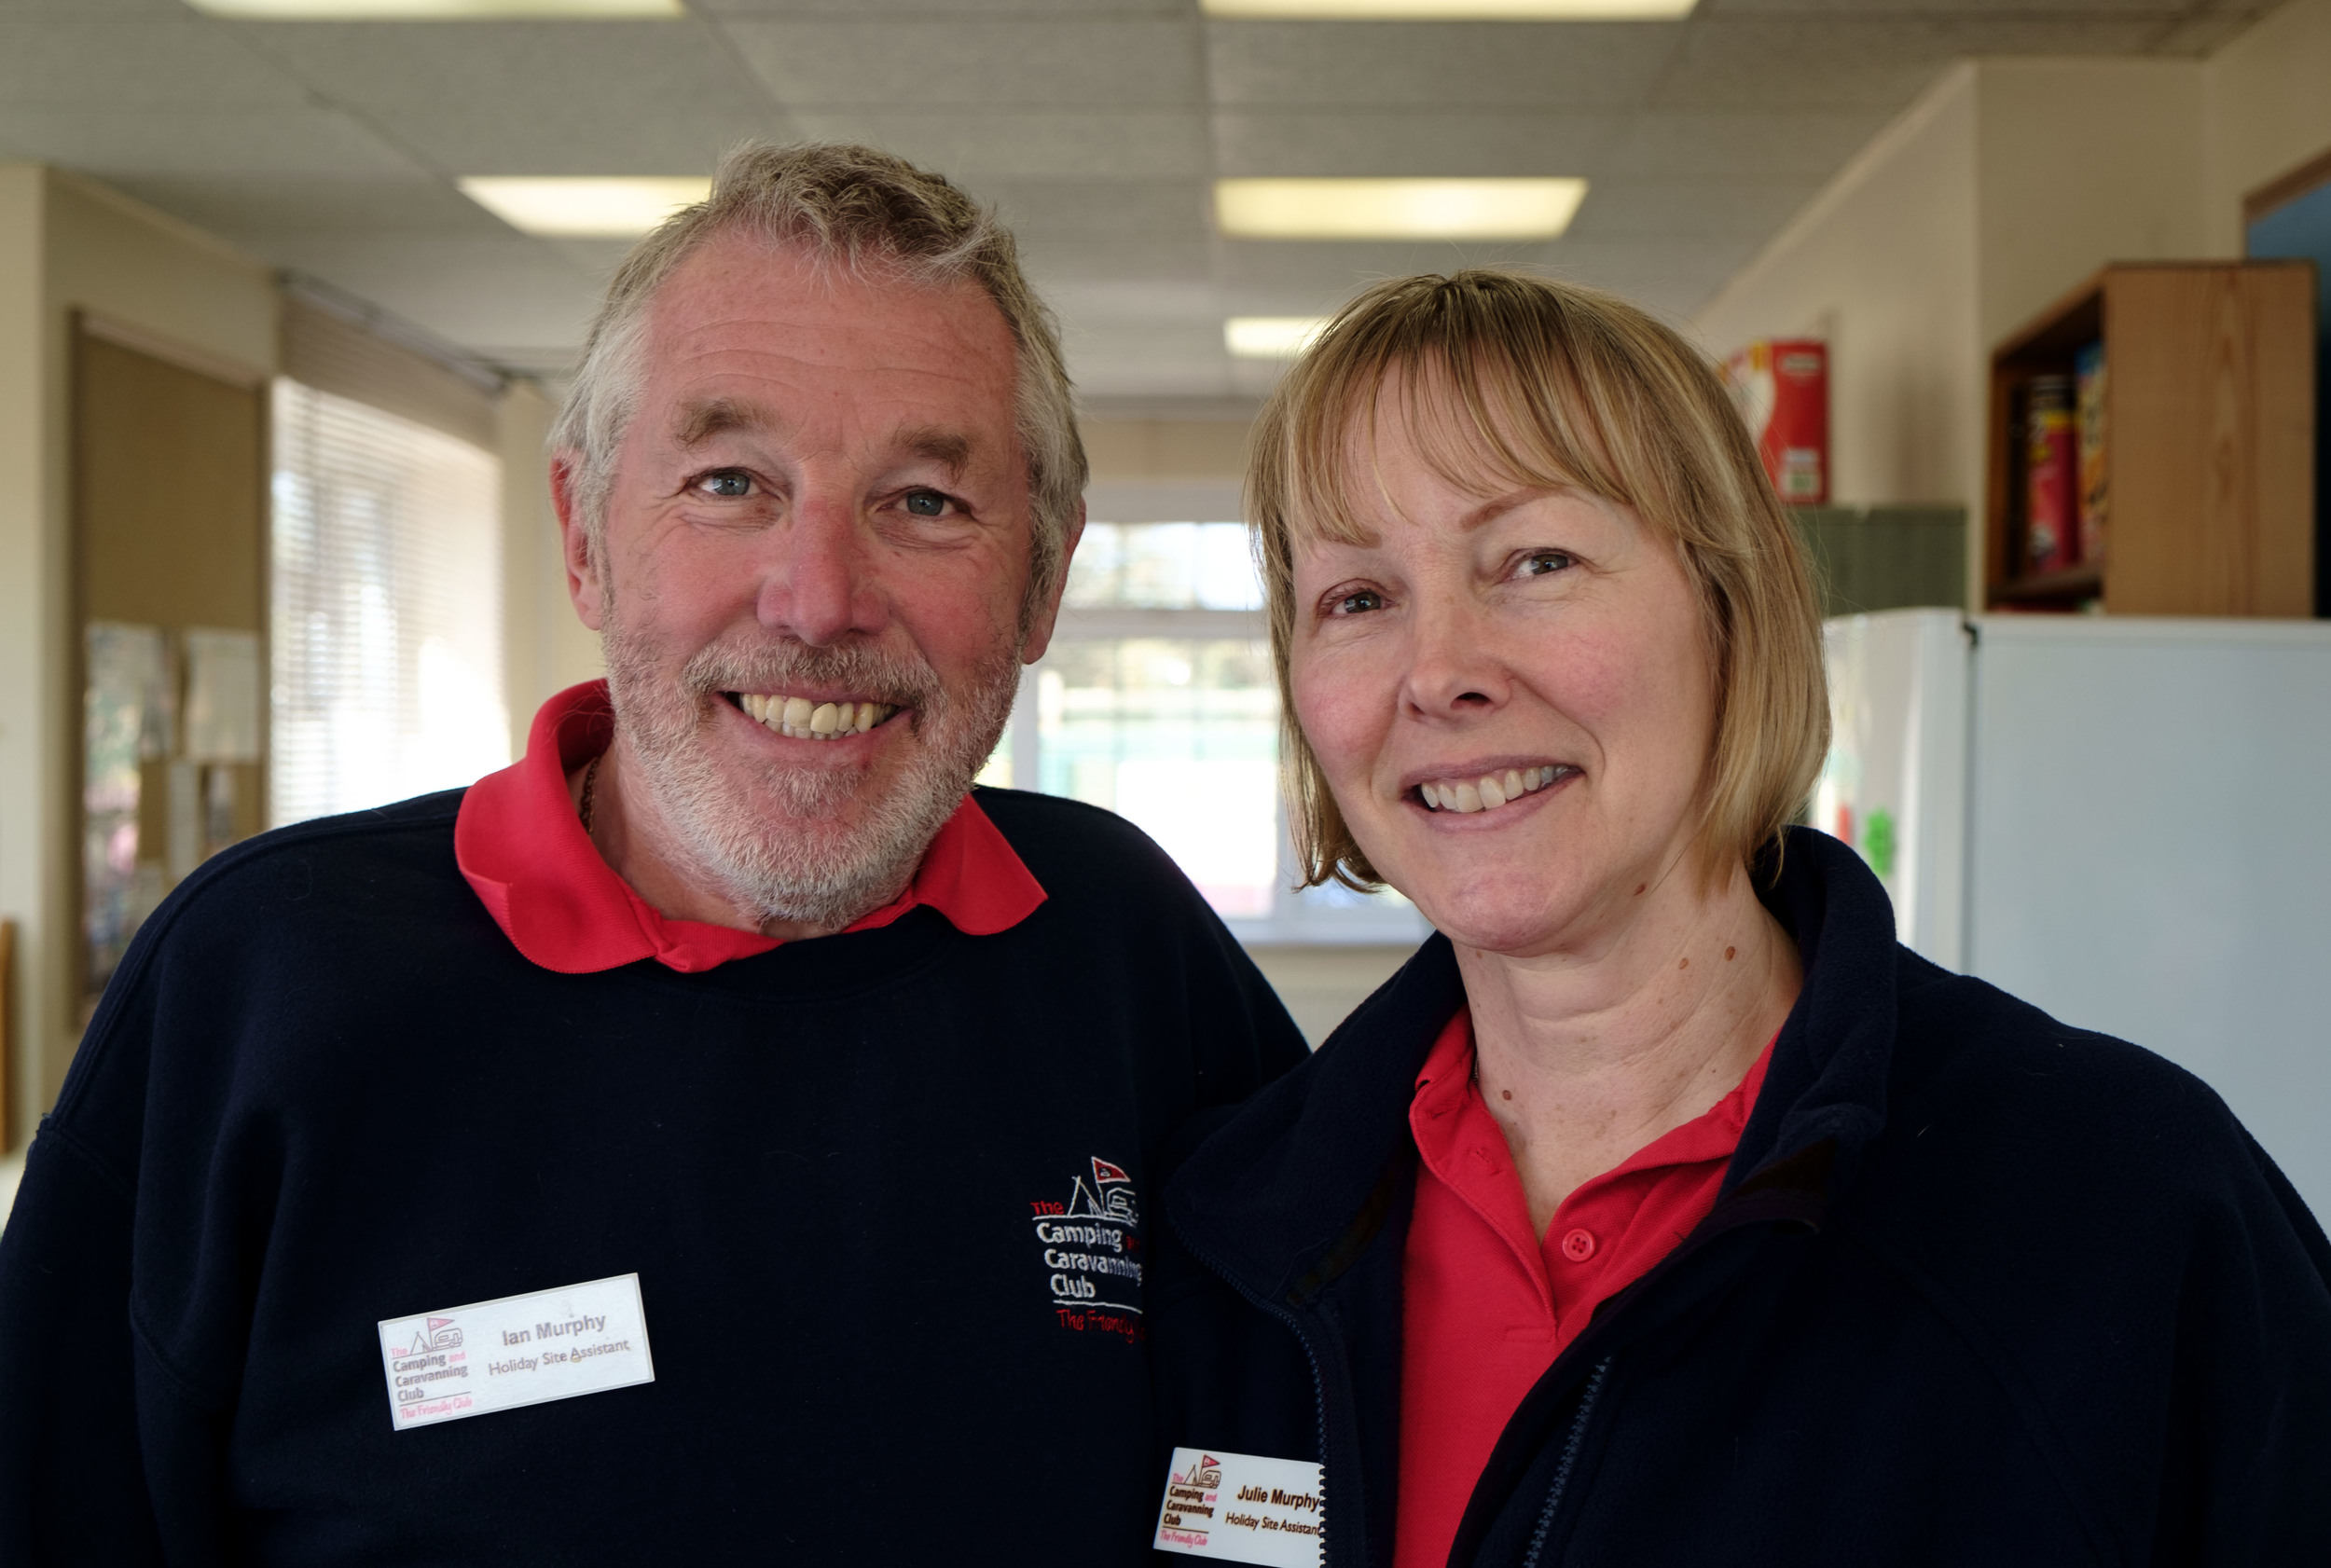 Ian et Julie, au Camping and Caravanning Club.